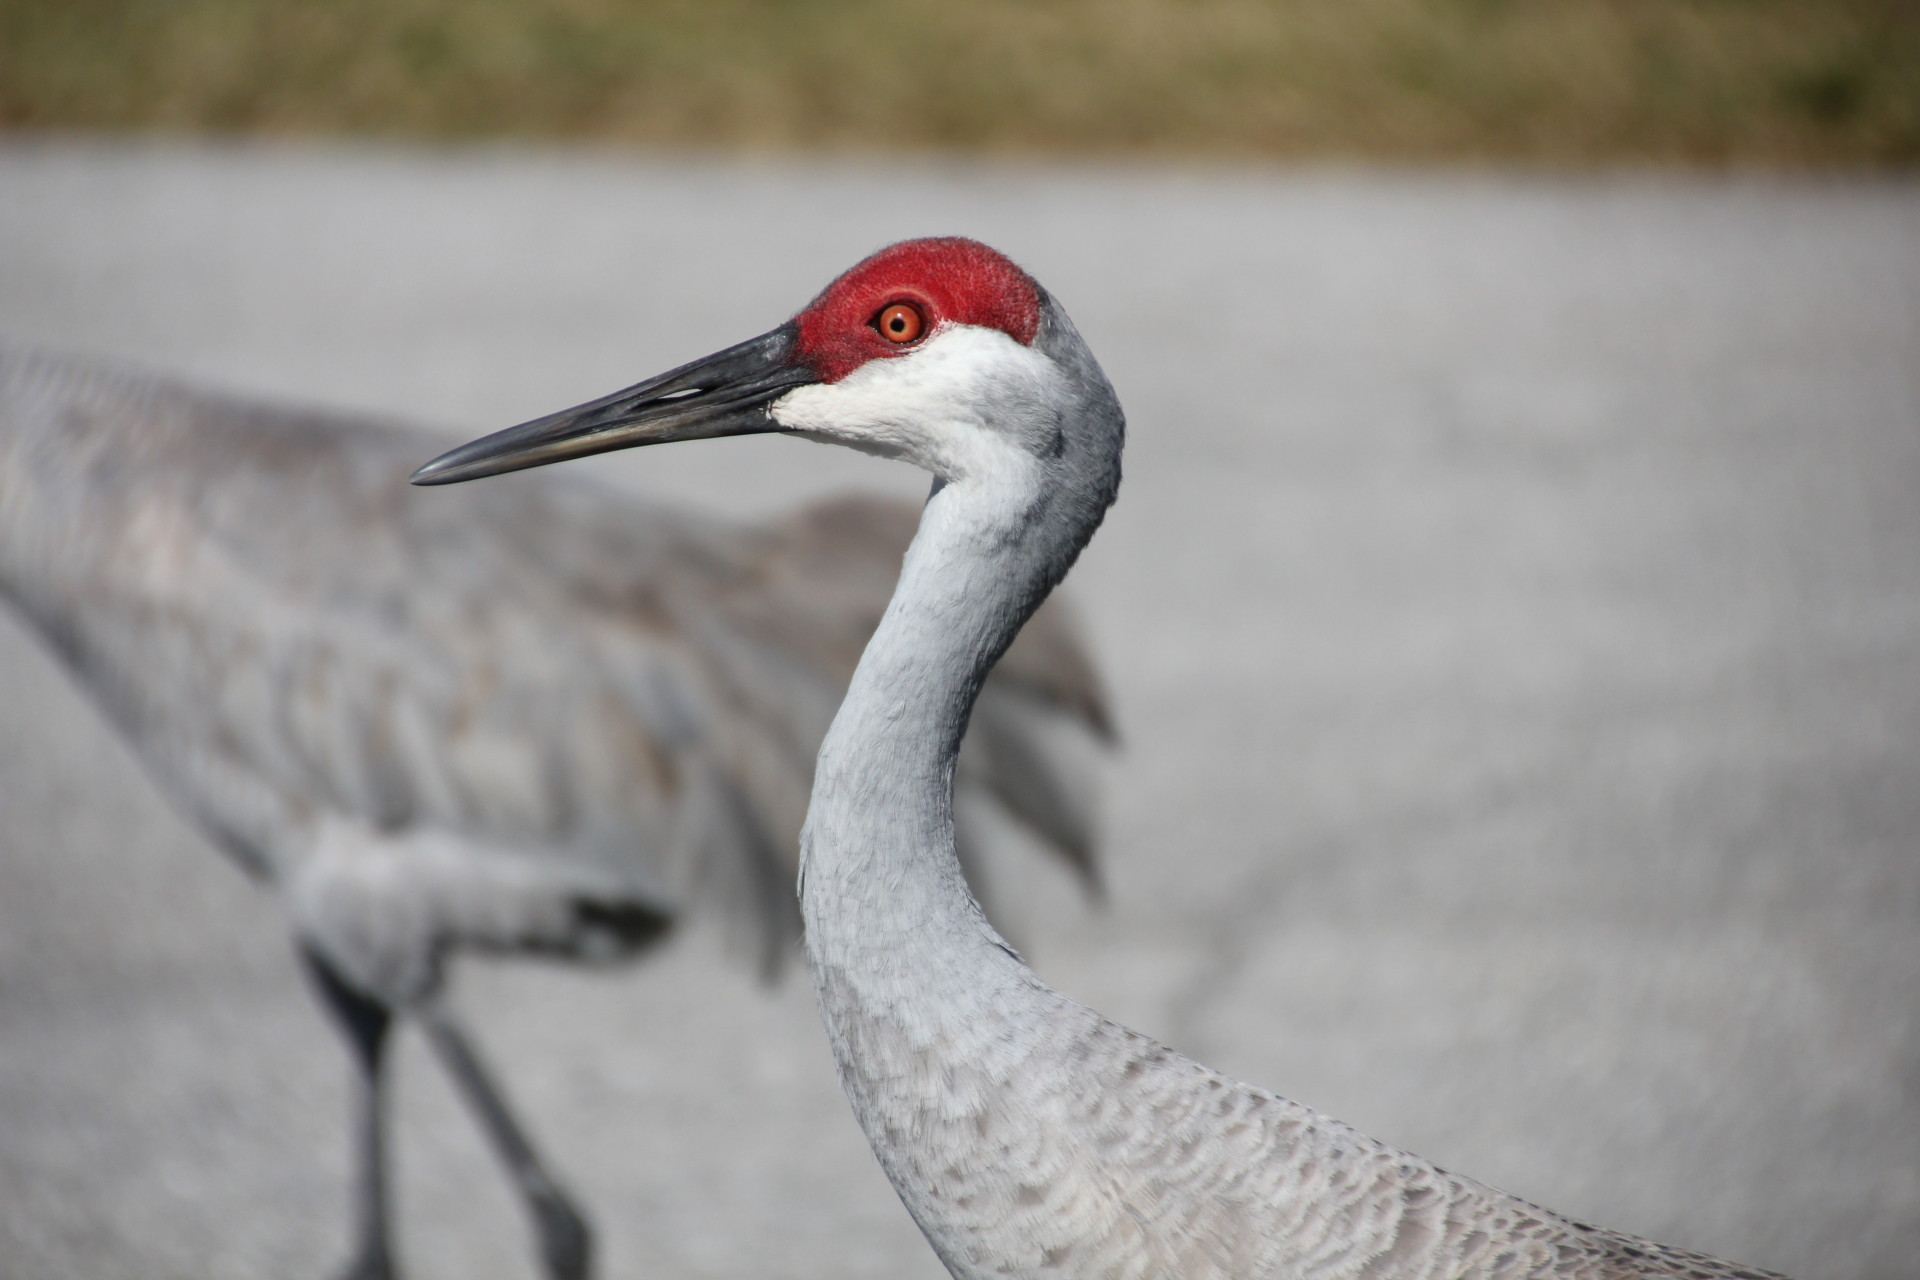 Sandhill Crane frequently walk the streets in Florida neighborhoods